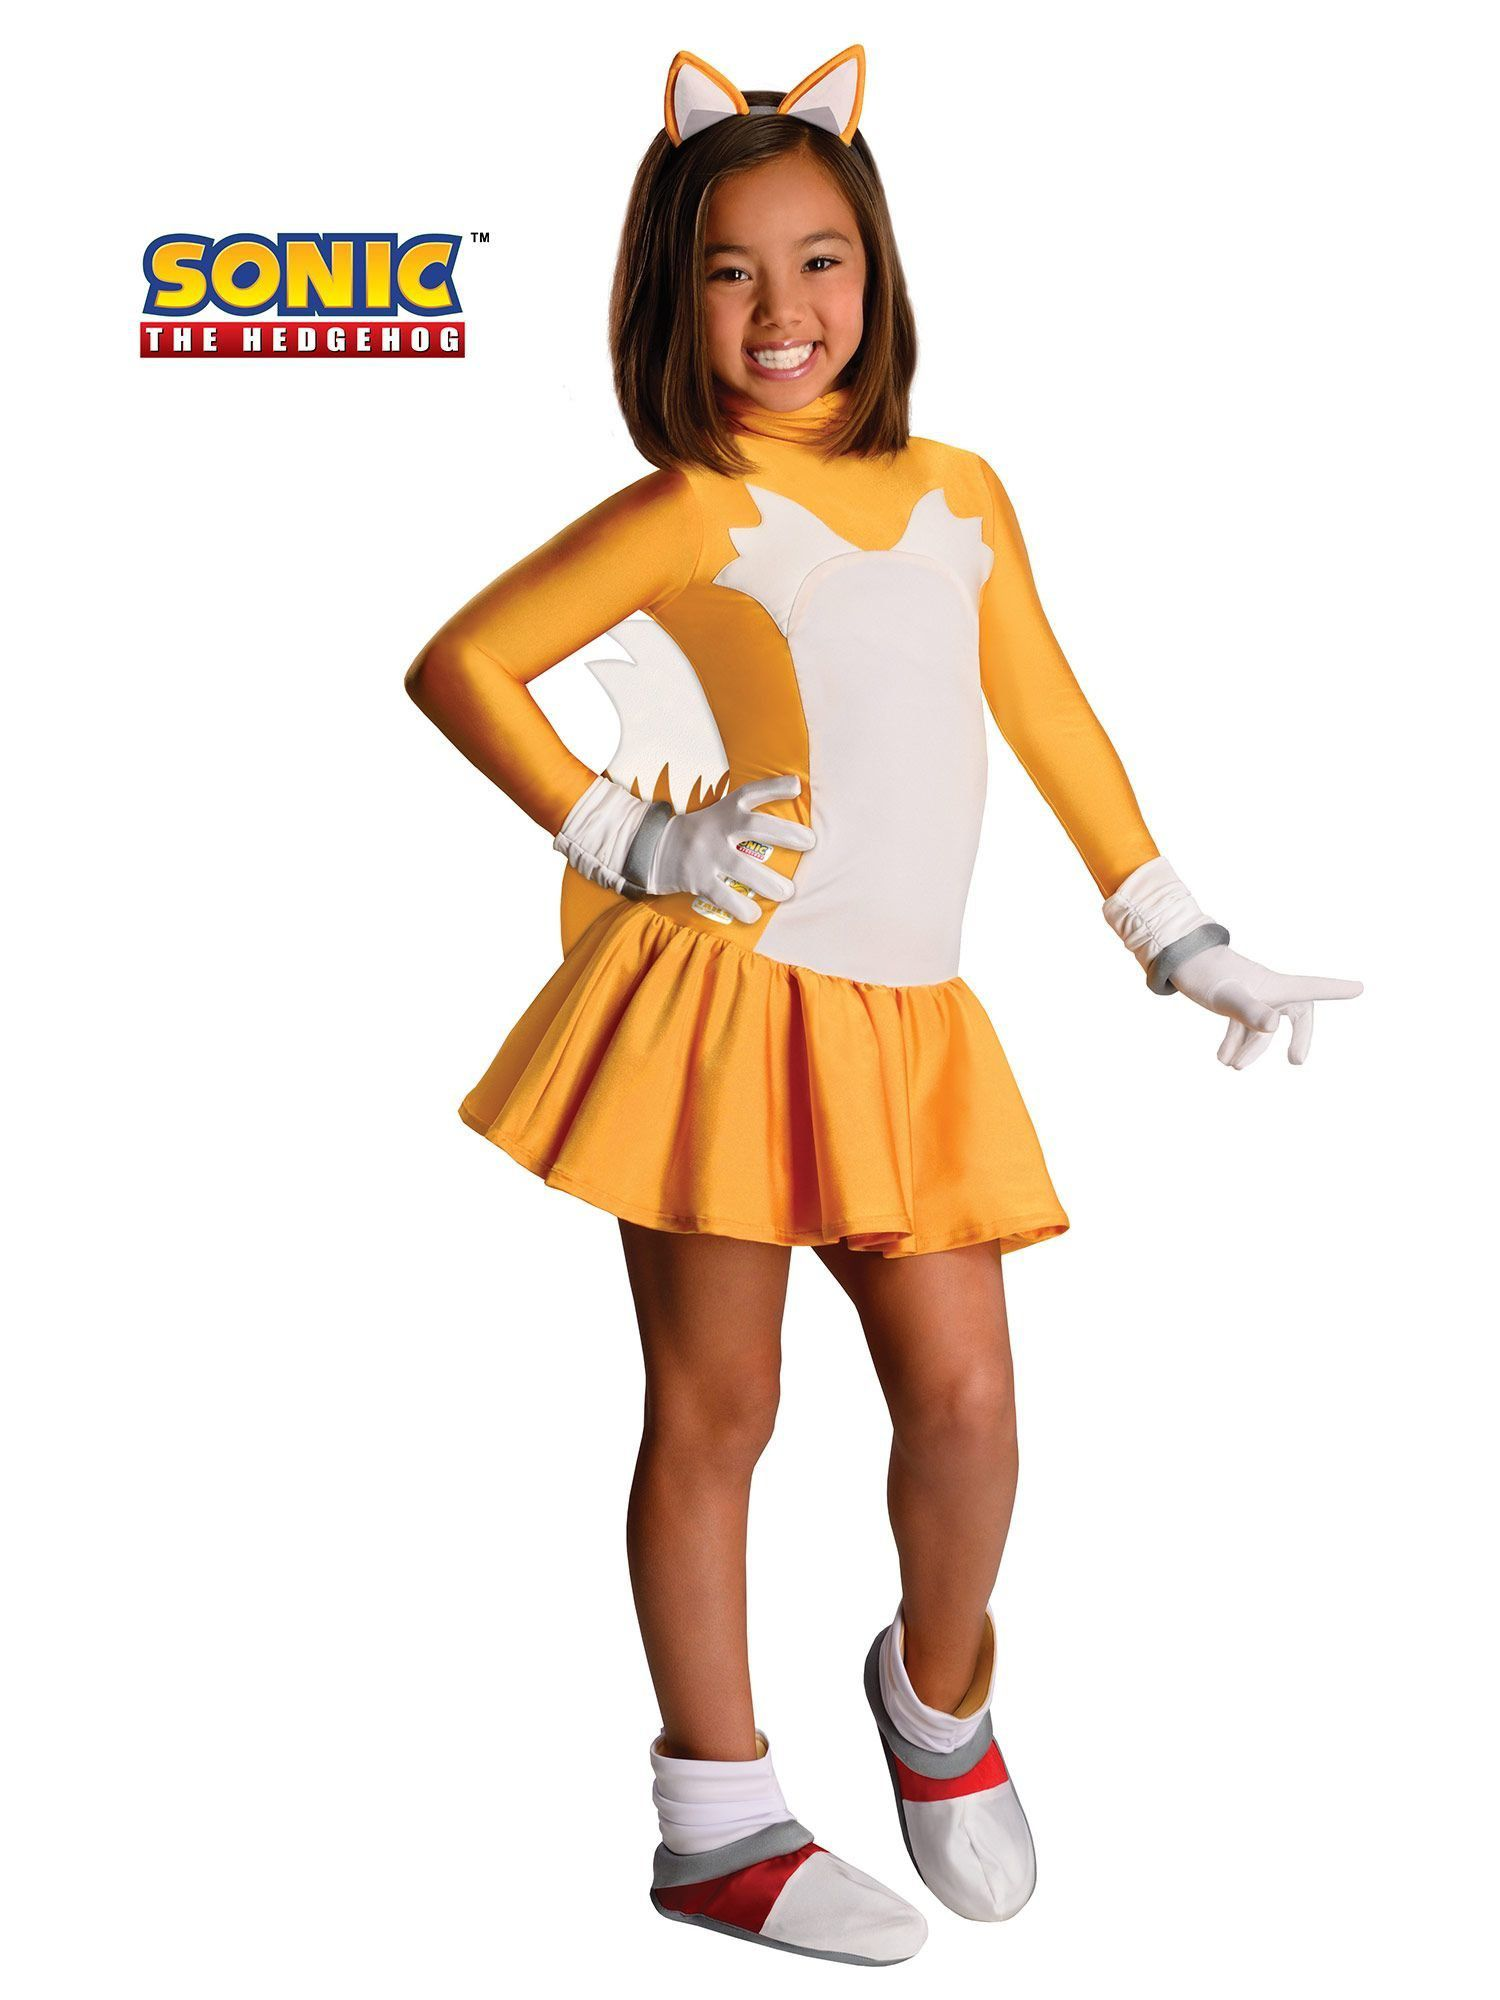 Tails Sonic Girls Costume  sc 1 st  Wholesale Halloween Costumes & Tails Sonic Girls Costume - Girls Costumes for 2018 | Wholesale ...